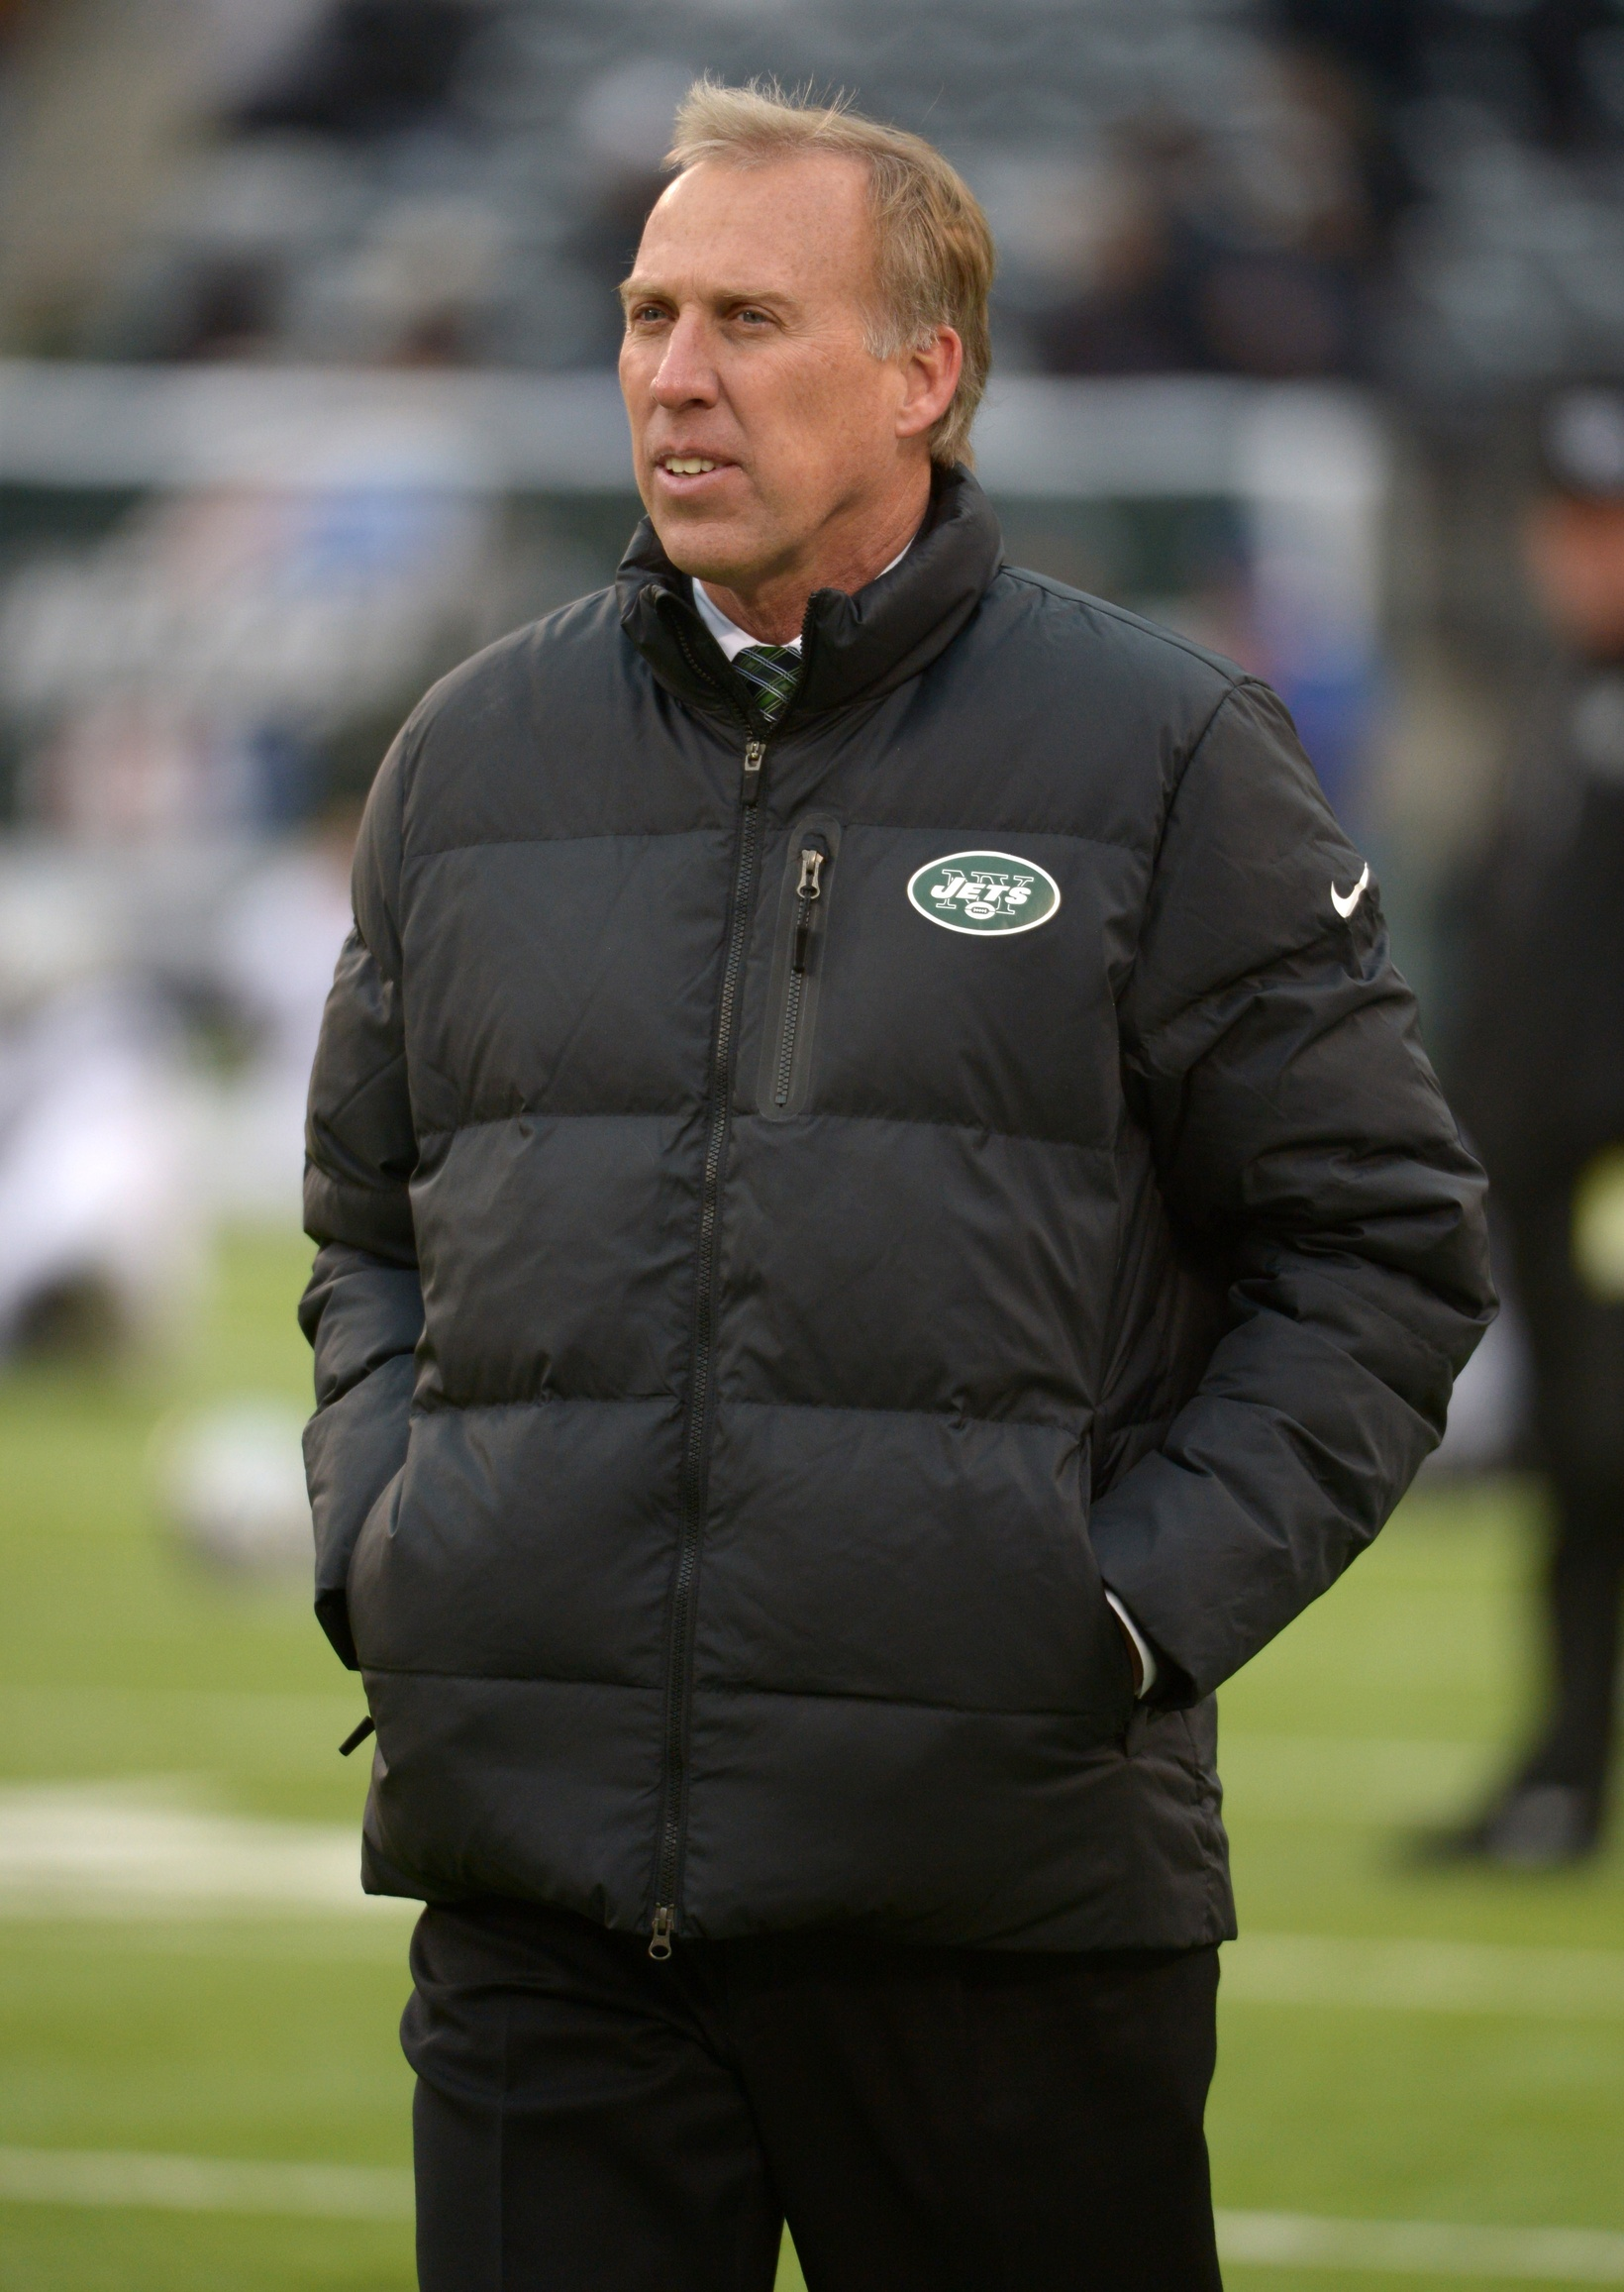 Jets' Early Start Should Motivate Idzik